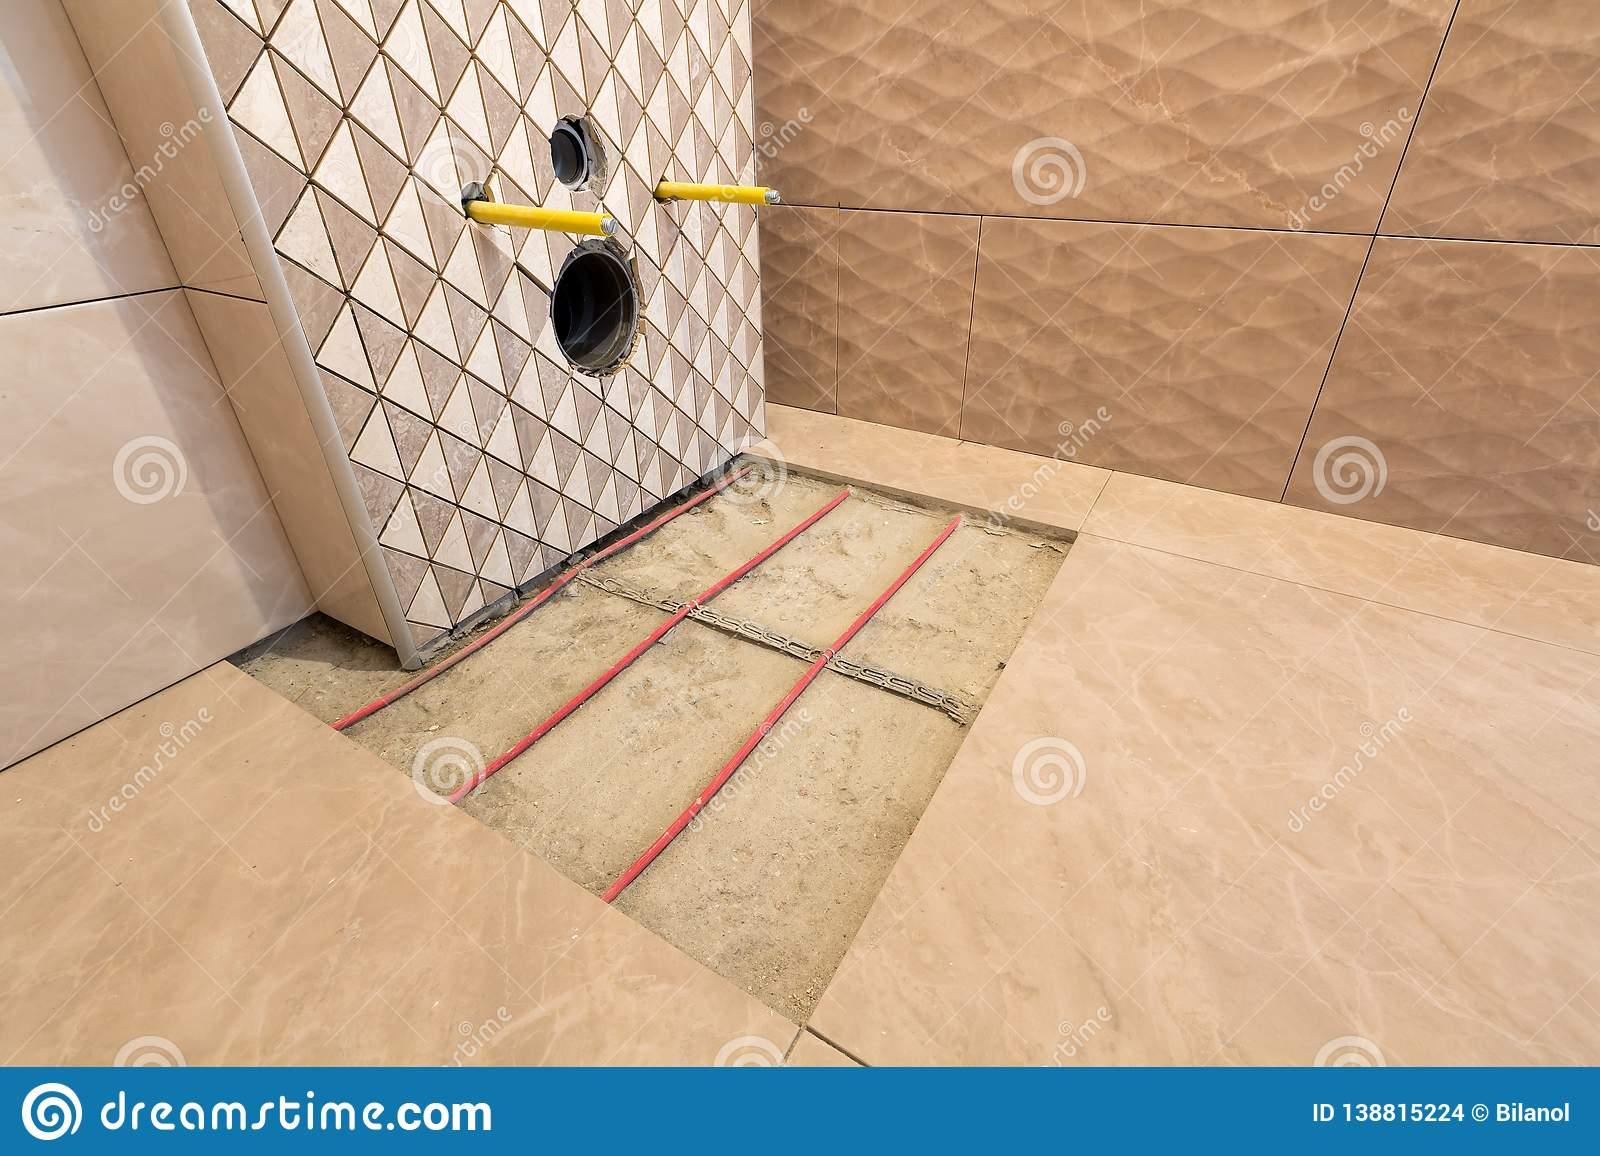 https www dreamstime com unfinished reconstruction bathroom ceramic tiles installed walls heating electrical cables system cement floor image138815224